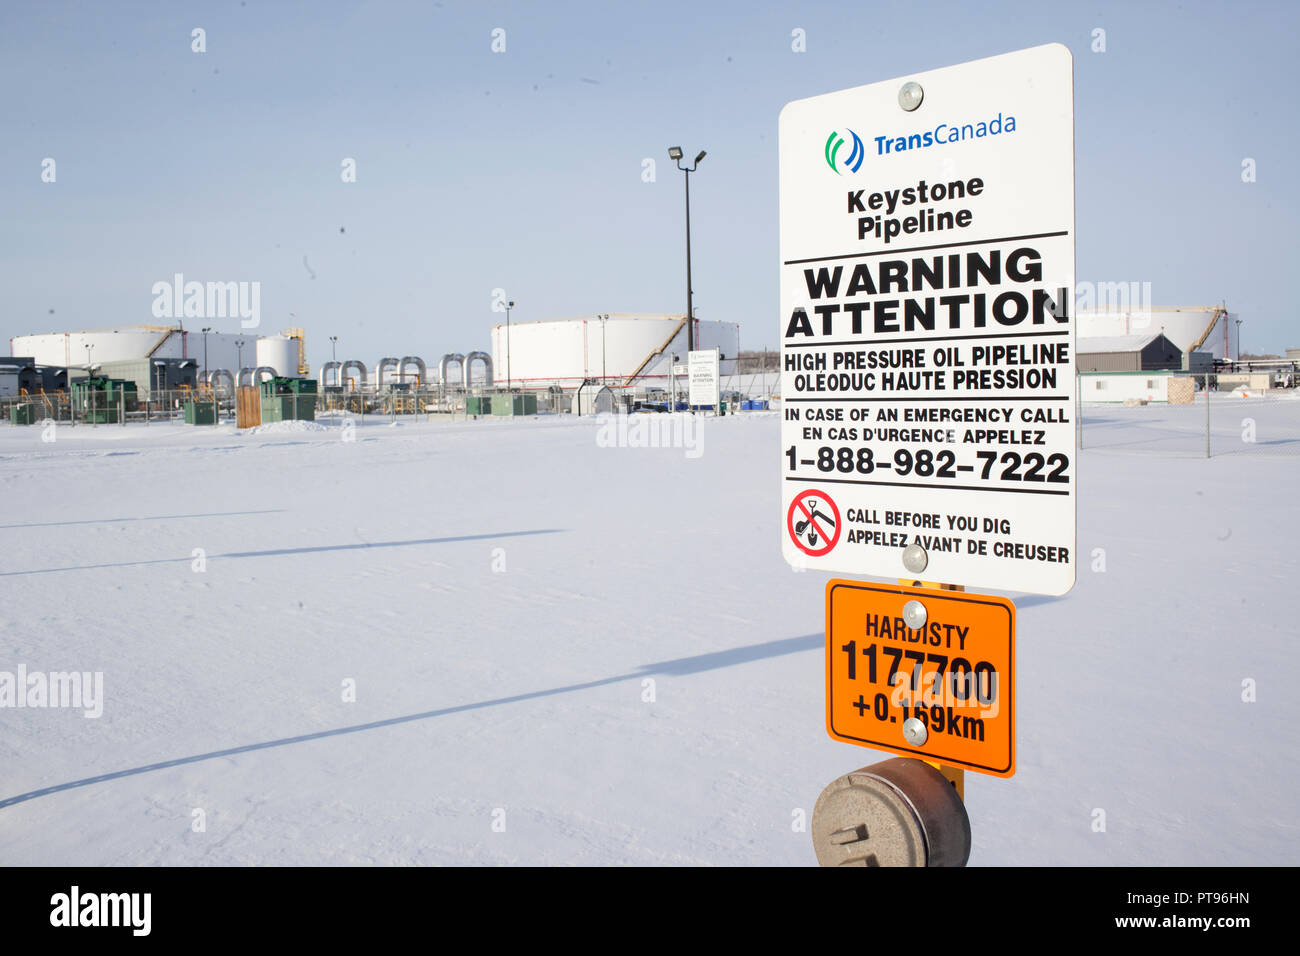 A warning sign for the Keystone Pipeline outside of TransCanada Hardisty Terminal 1, in Hardisty, Alberta, Canada, on December 7, 2013. Hardisty Terminal 1 is the starting point of the Keystone Pipeline. Construction is currently underway on TransCanada's Hardisty Terminal 2, which will be the starting point of the Keystone XL pipeline, which will transport oil from Alberta oilsands to markets in the United States. Stock Photo